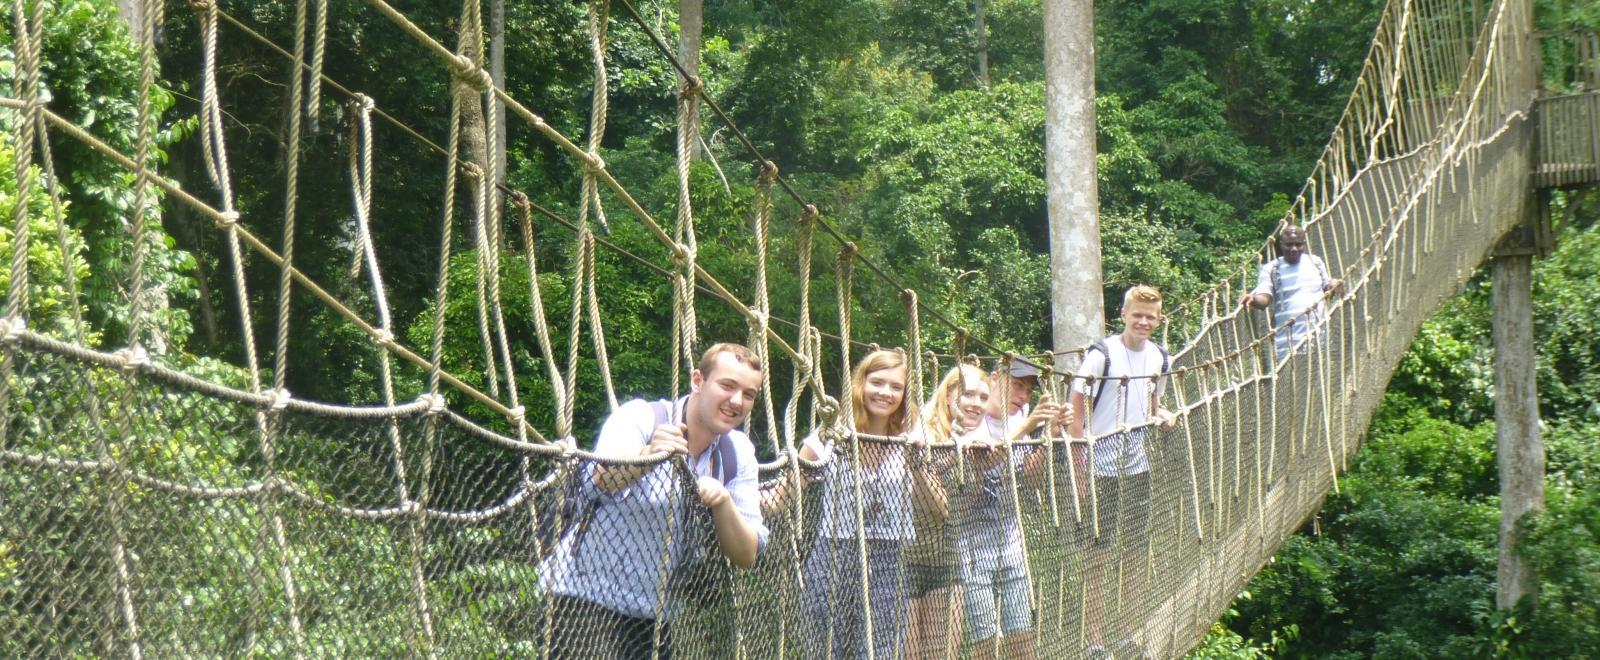 Projects Abroad volunteers enjoy a fun canopy walk in a forest in ghana.